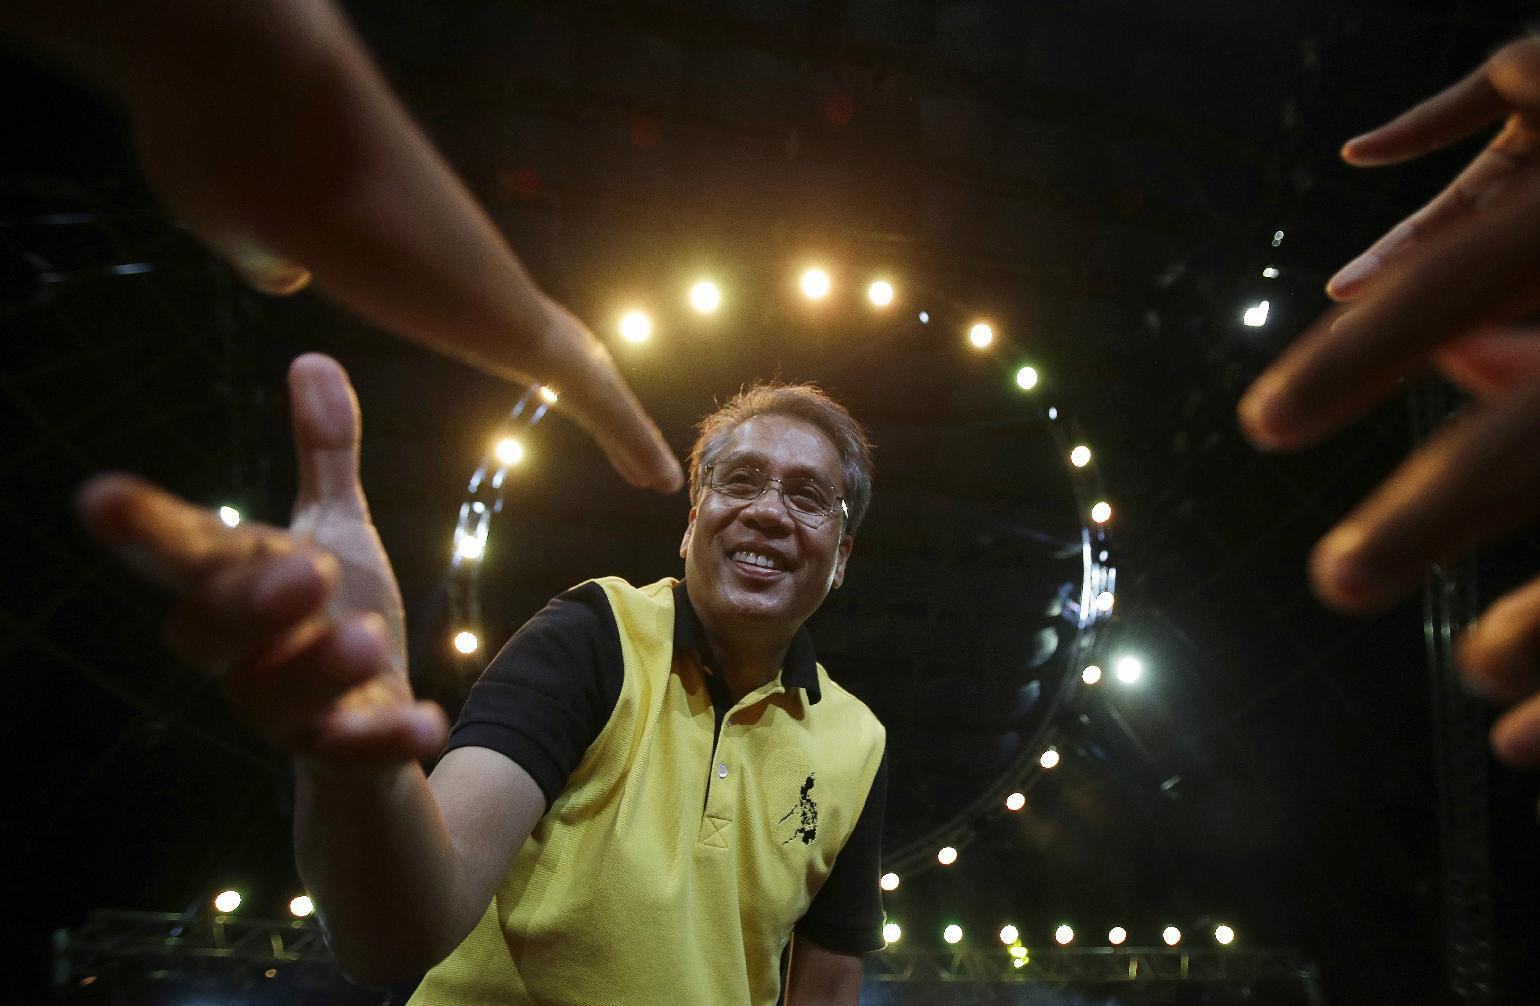 Aquino's pick for Philippine president banks on clean image